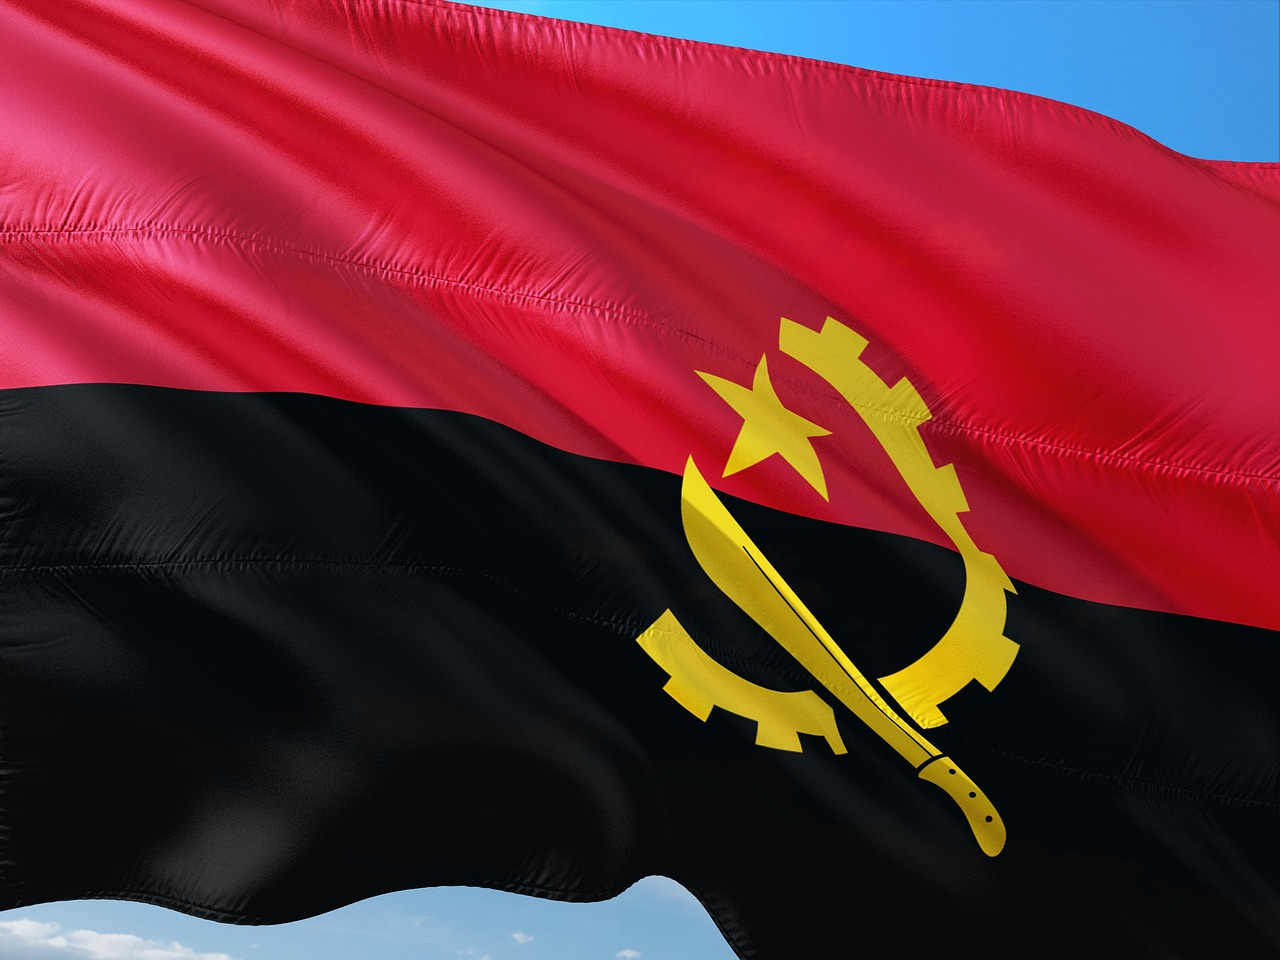 Angola law prohibiting discrimination based on sexual orientation takes effect